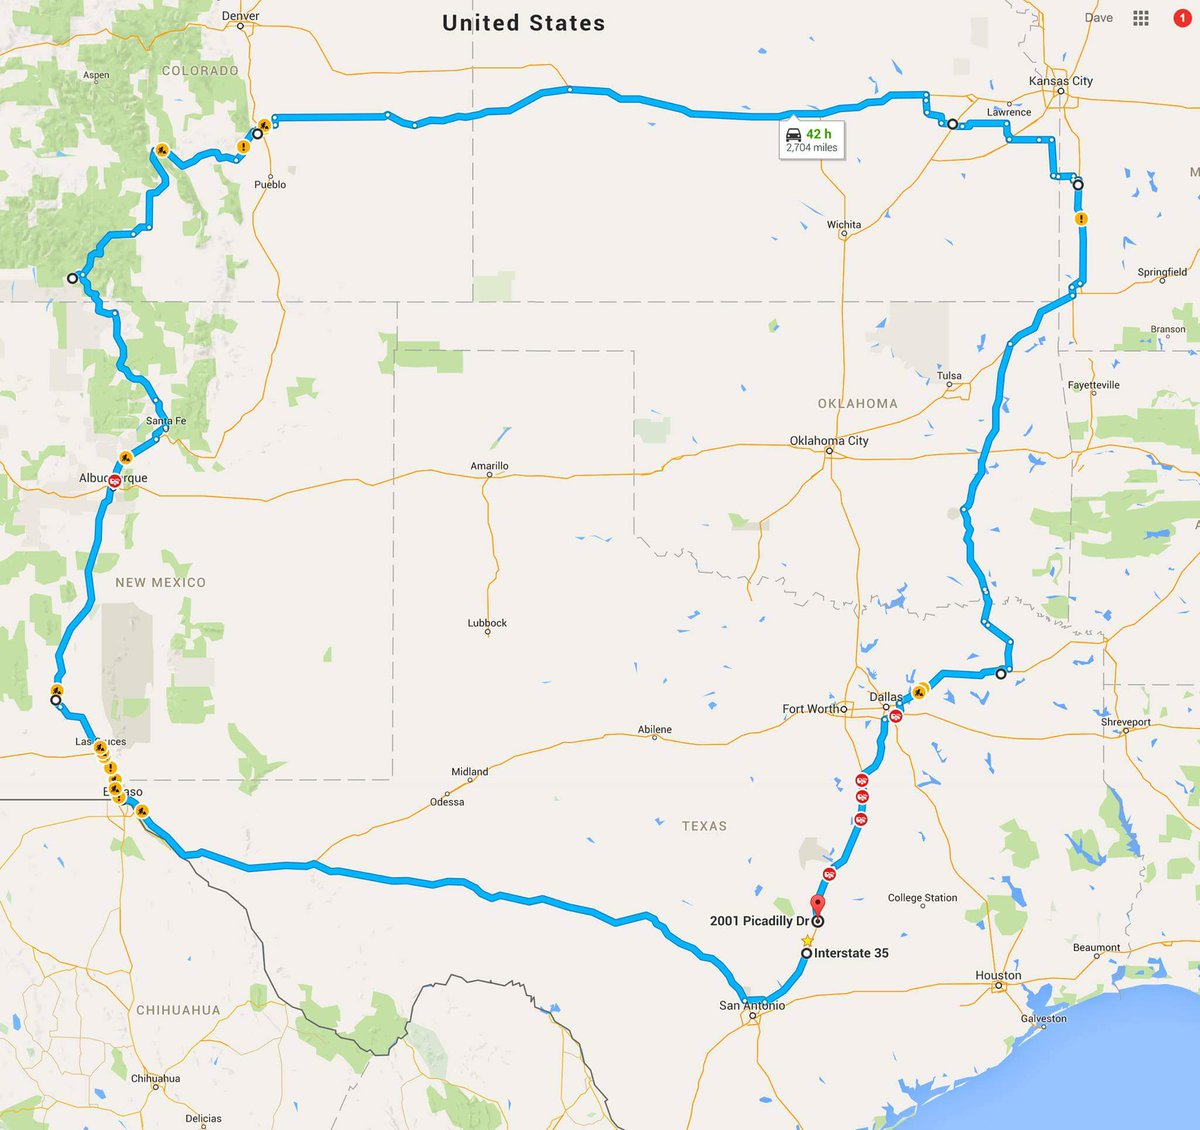 If you need to get from S. Austin to N. Austin during #sxsw take this shortcut for the next few weeks. -Dave Madden https://t.co/GBa39zfitm